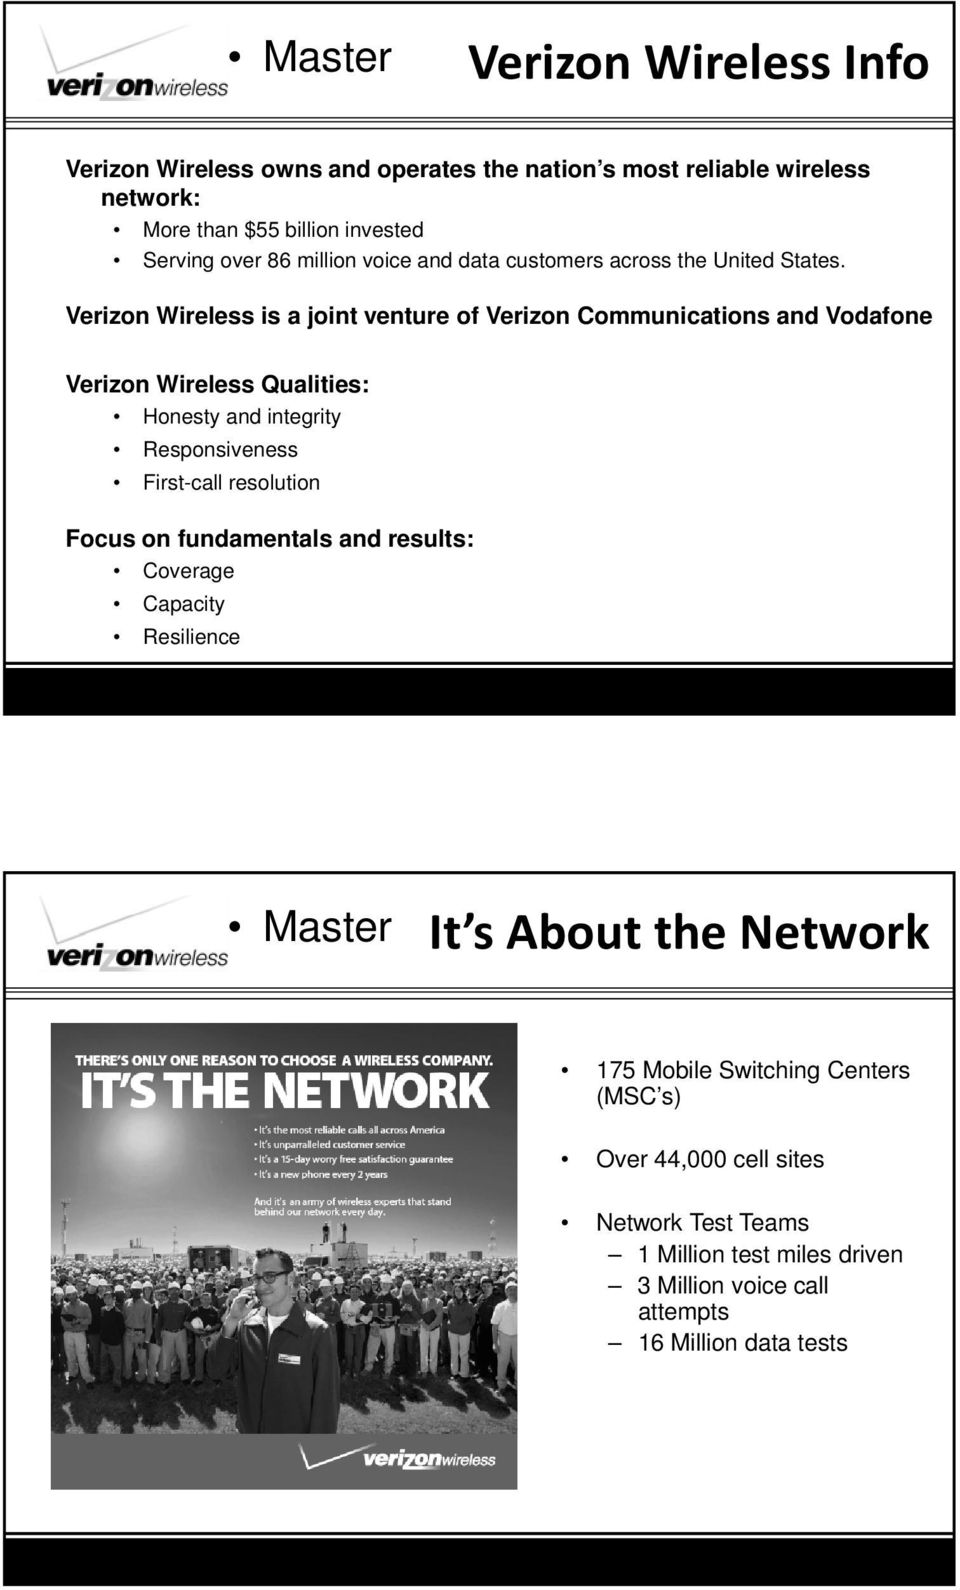 Verizon Wireless is a joint venture of Verizon Communications and Vodafone Verizon Wireless Qualities: Honesty and integrity Responsiveness First-call